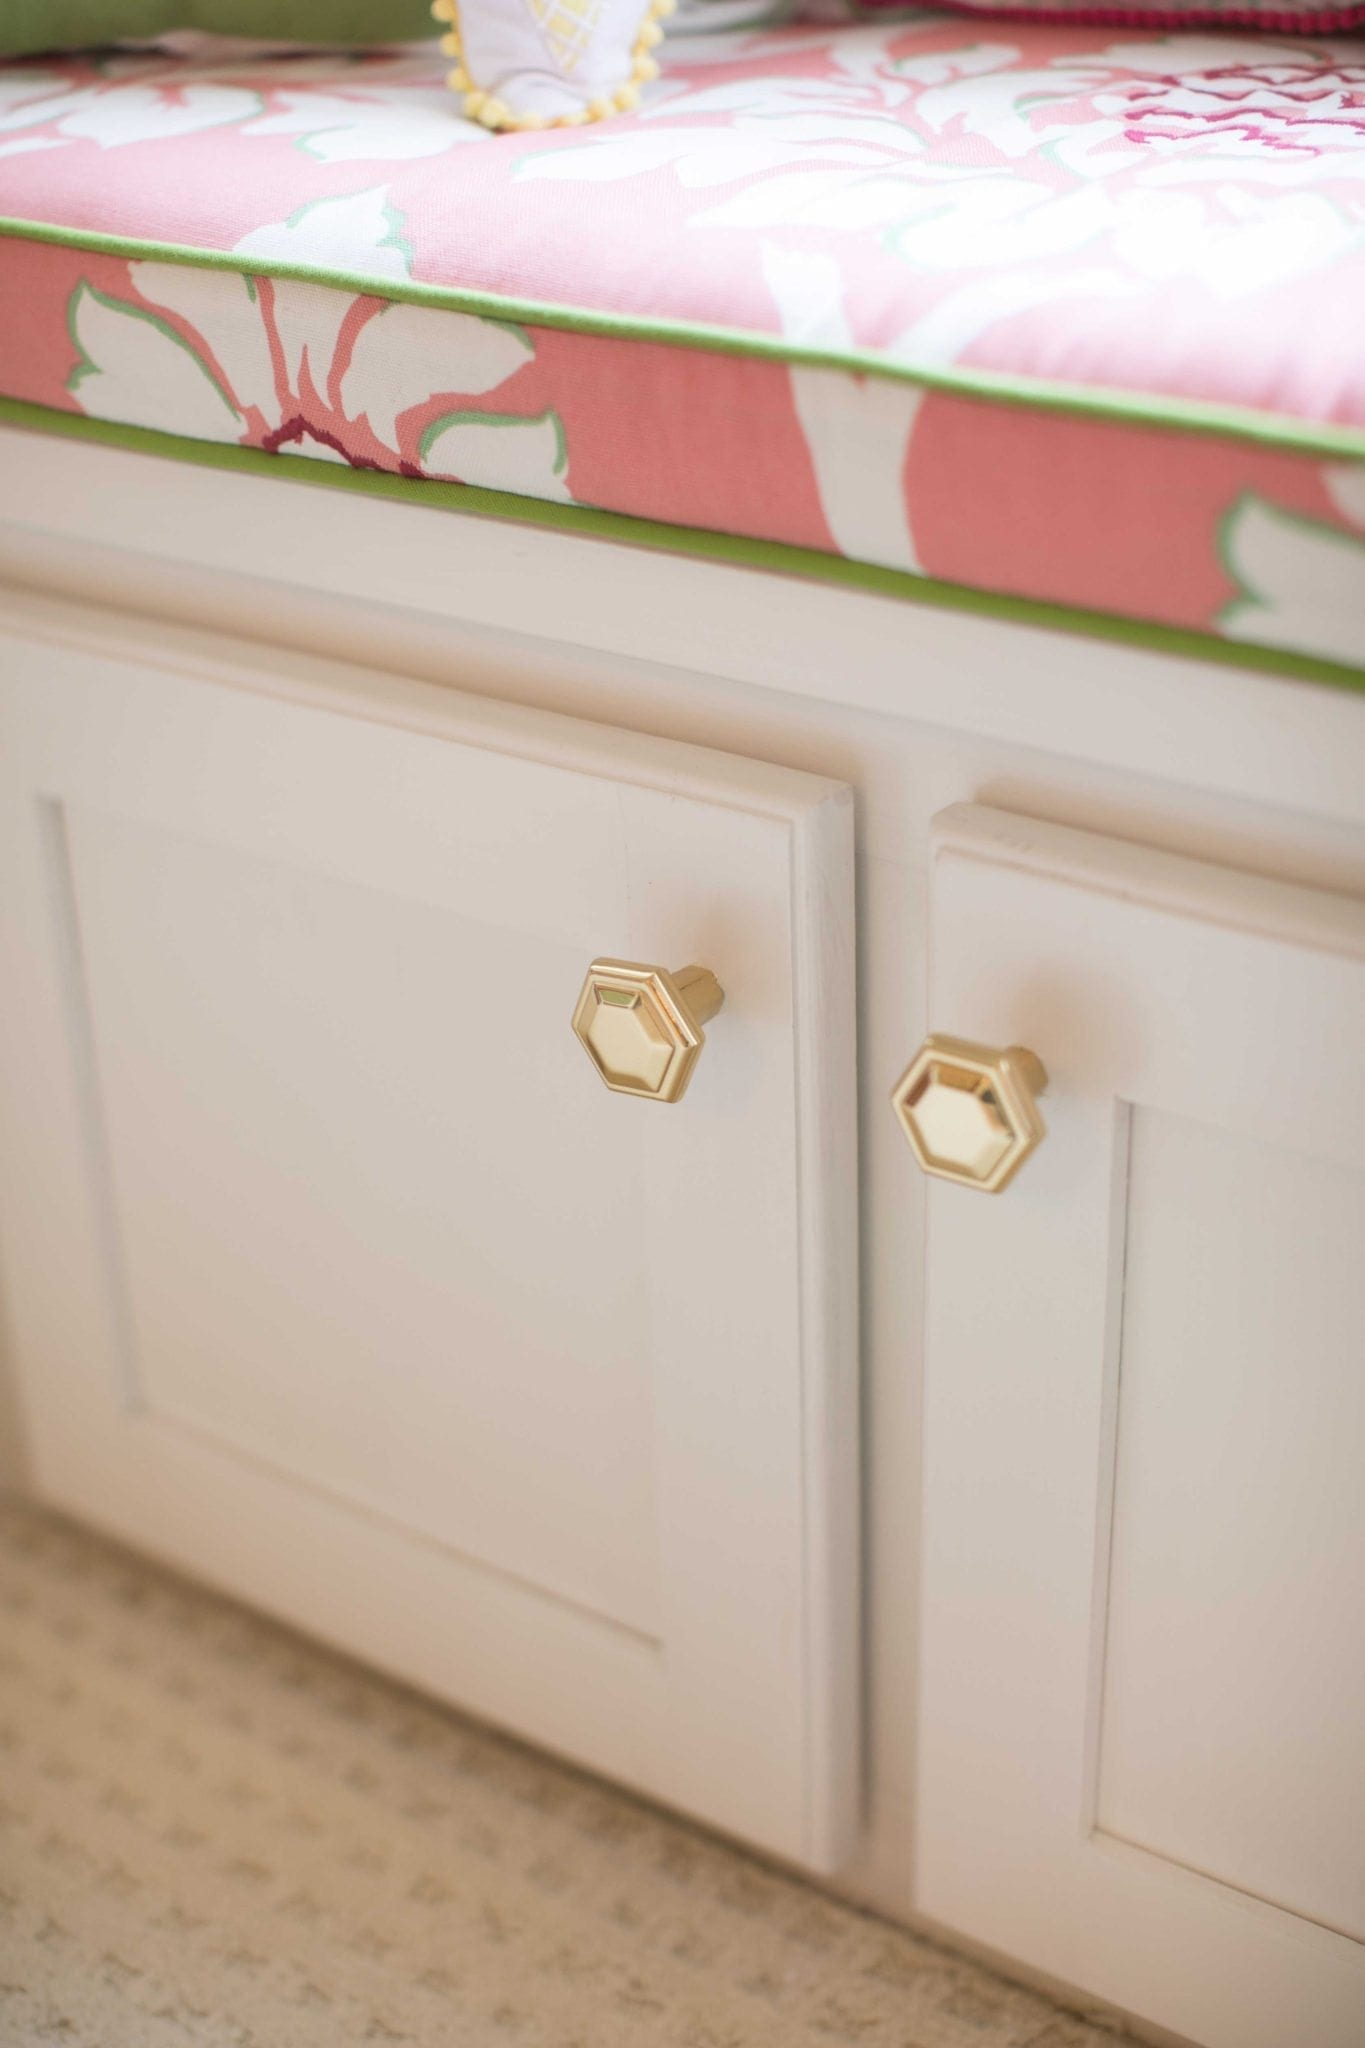 geometric gold knobs from bellacaor that look like CB2 gold hardware